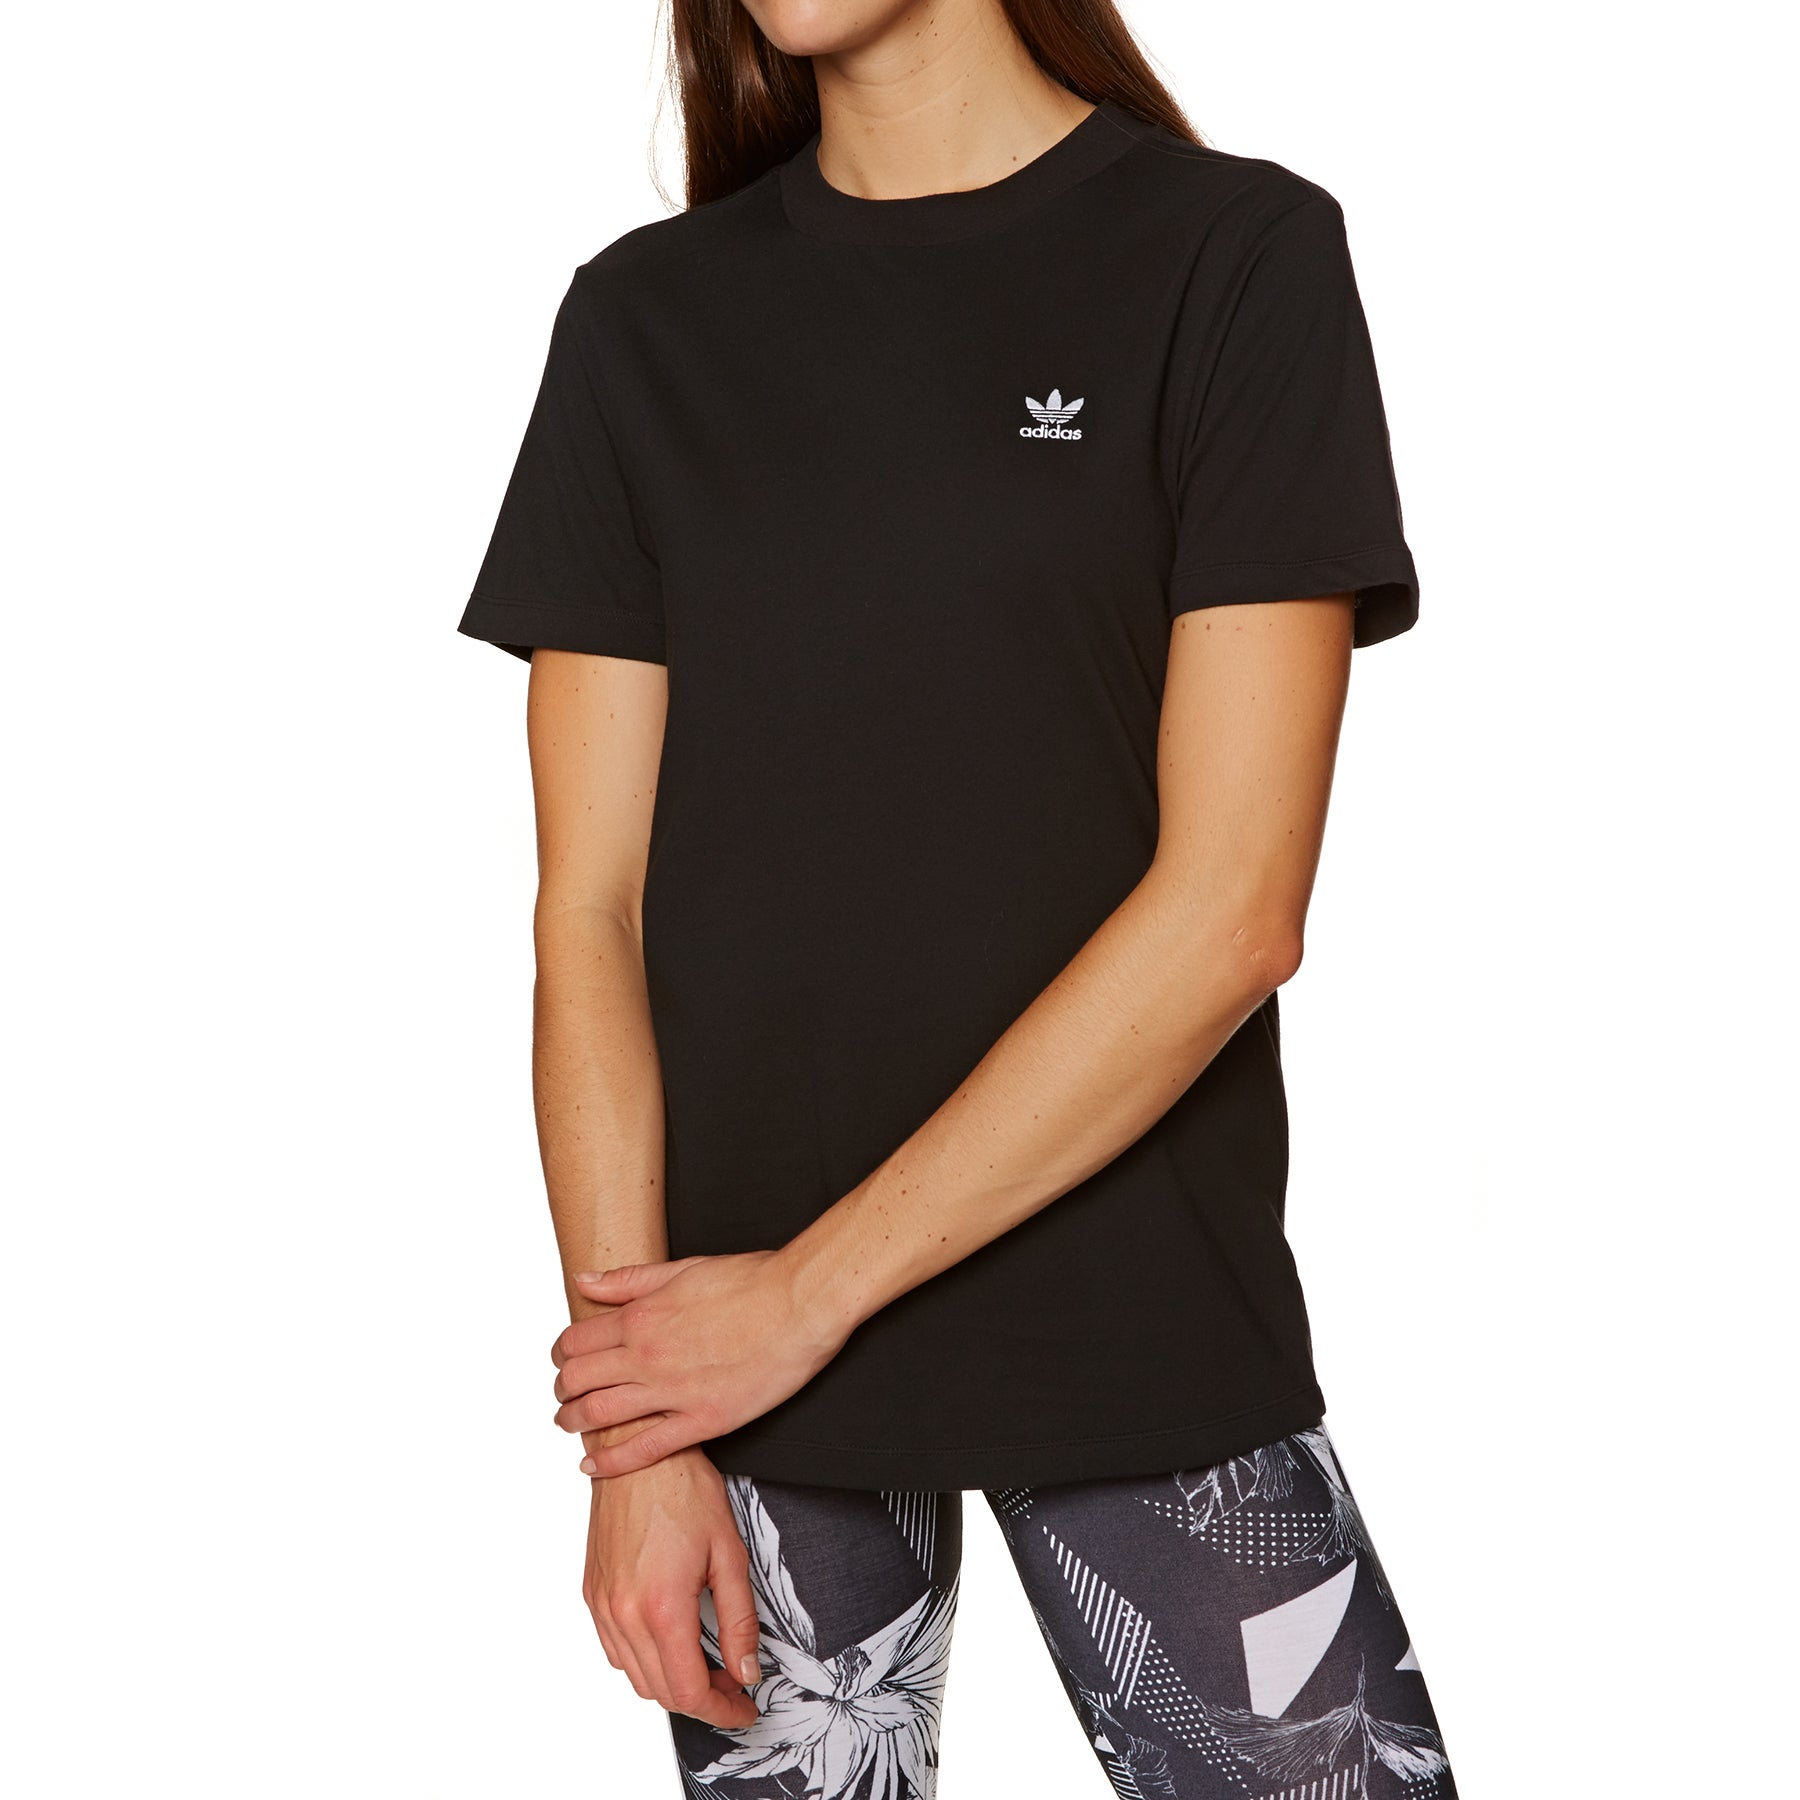 Adidas Originals Complements Damen Kurzarm-T-Shirt - Black